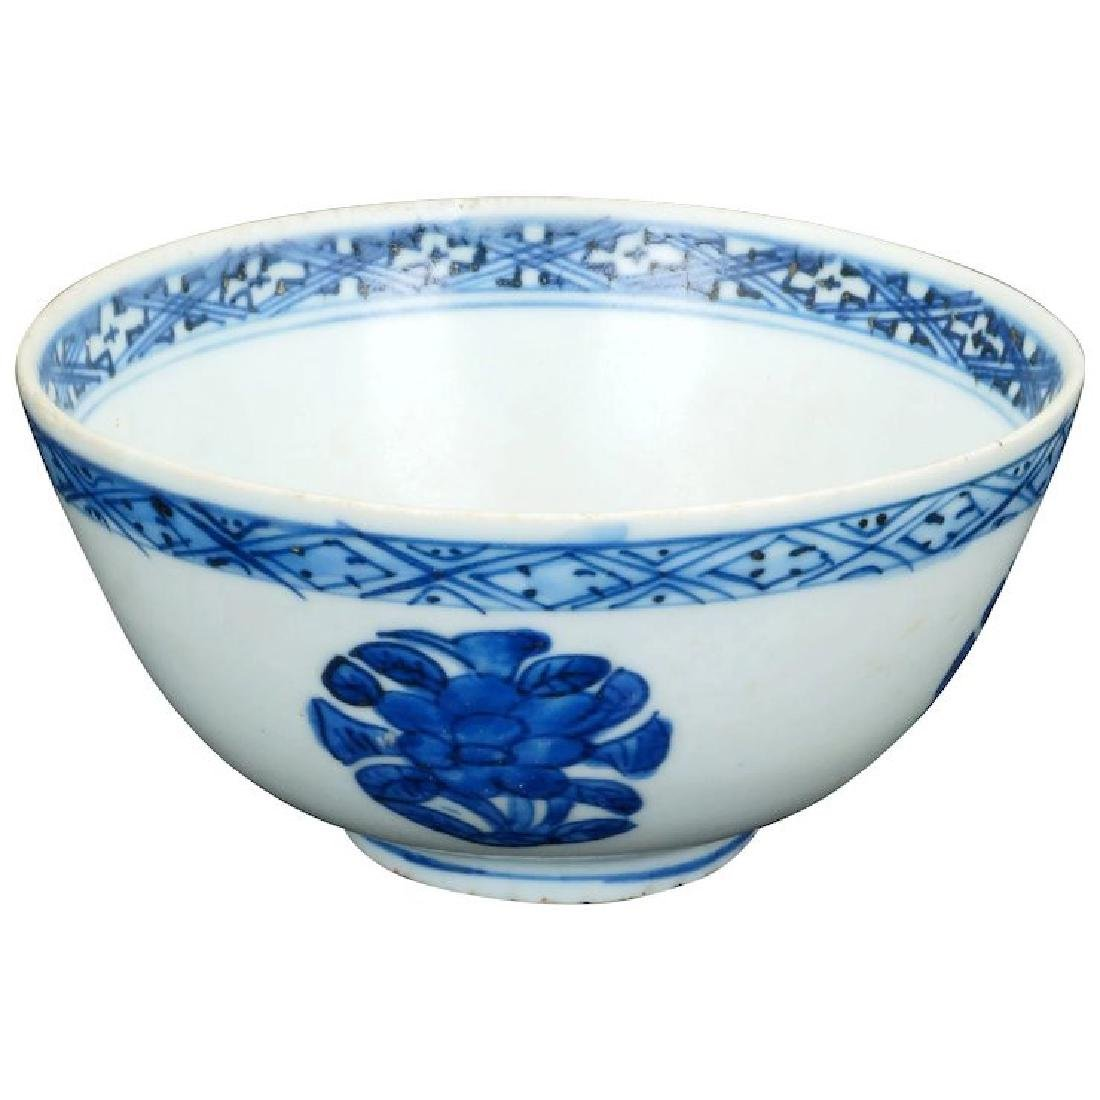 Chinese Wanli blue and white porcelain bowl with peony